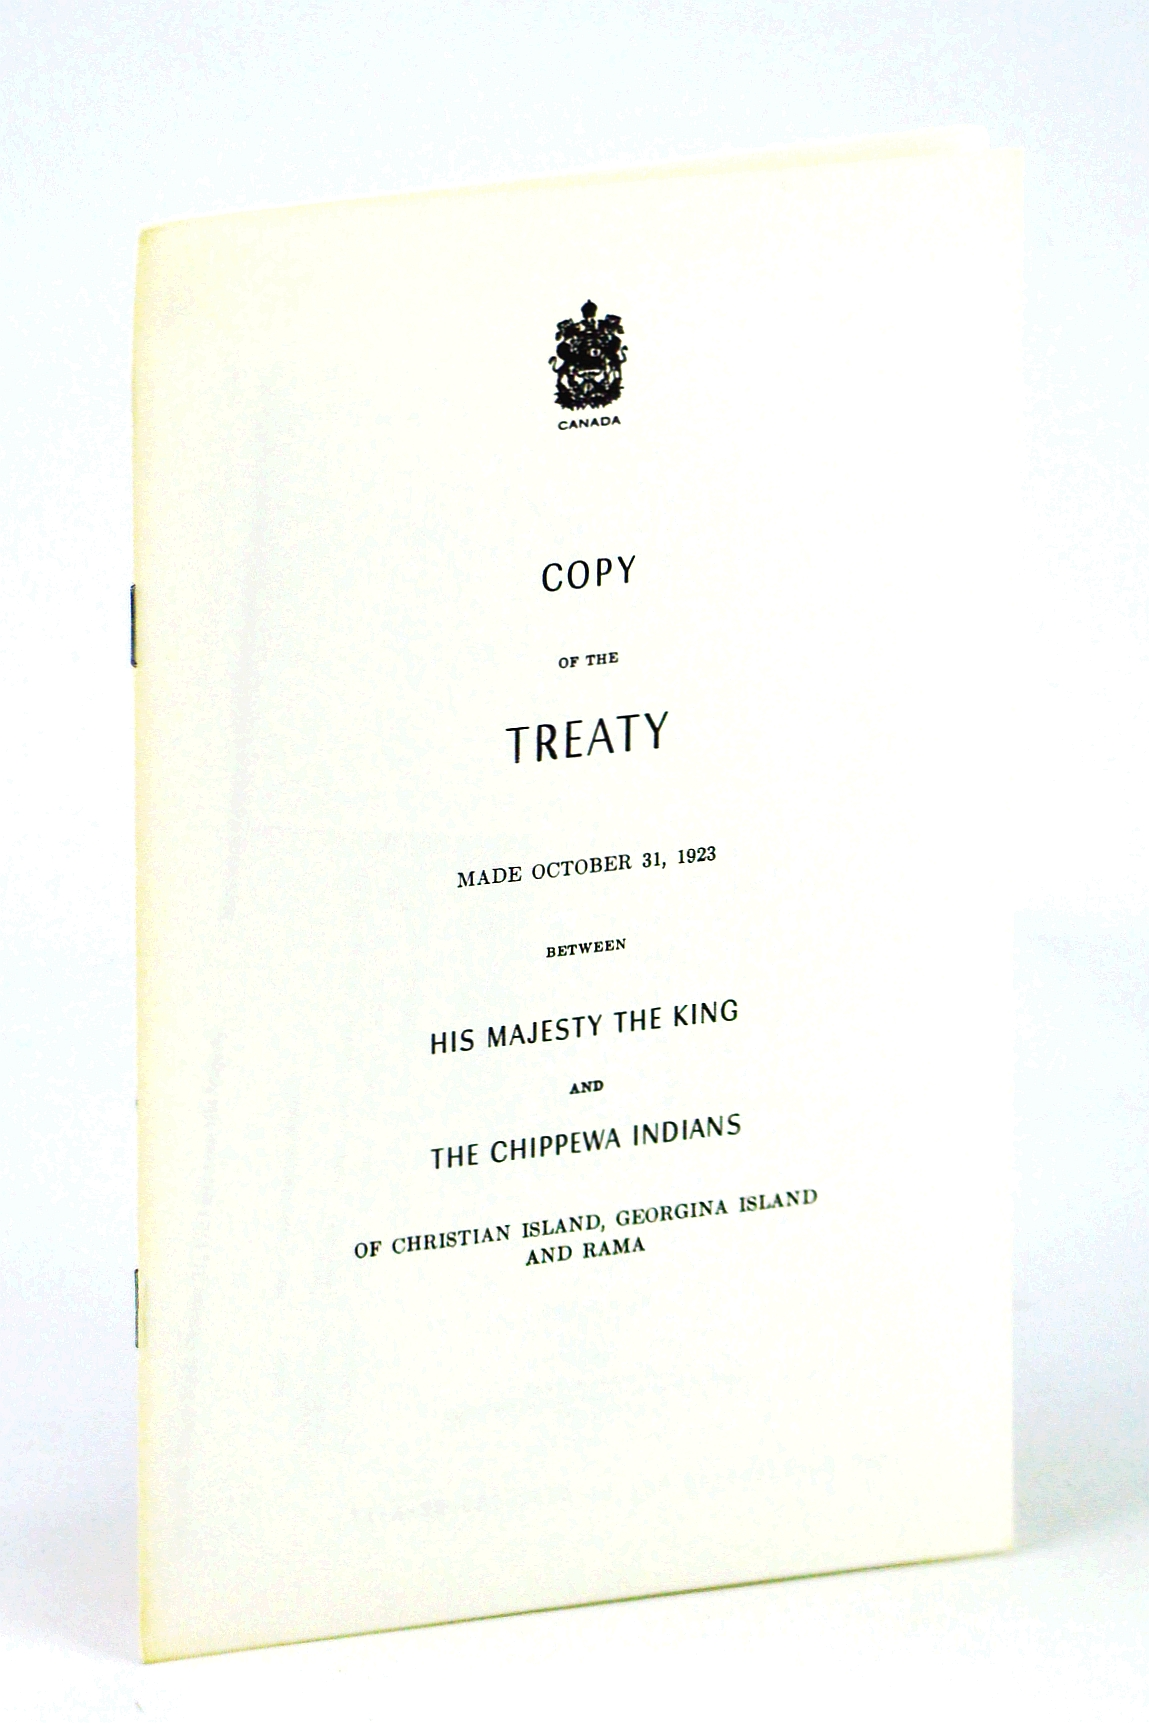 Image for Copy of the Treaty Made October 31, 1923 Between His Majesty the King and the Chippewa Indians of Christian Island, Georgian Island and Rama